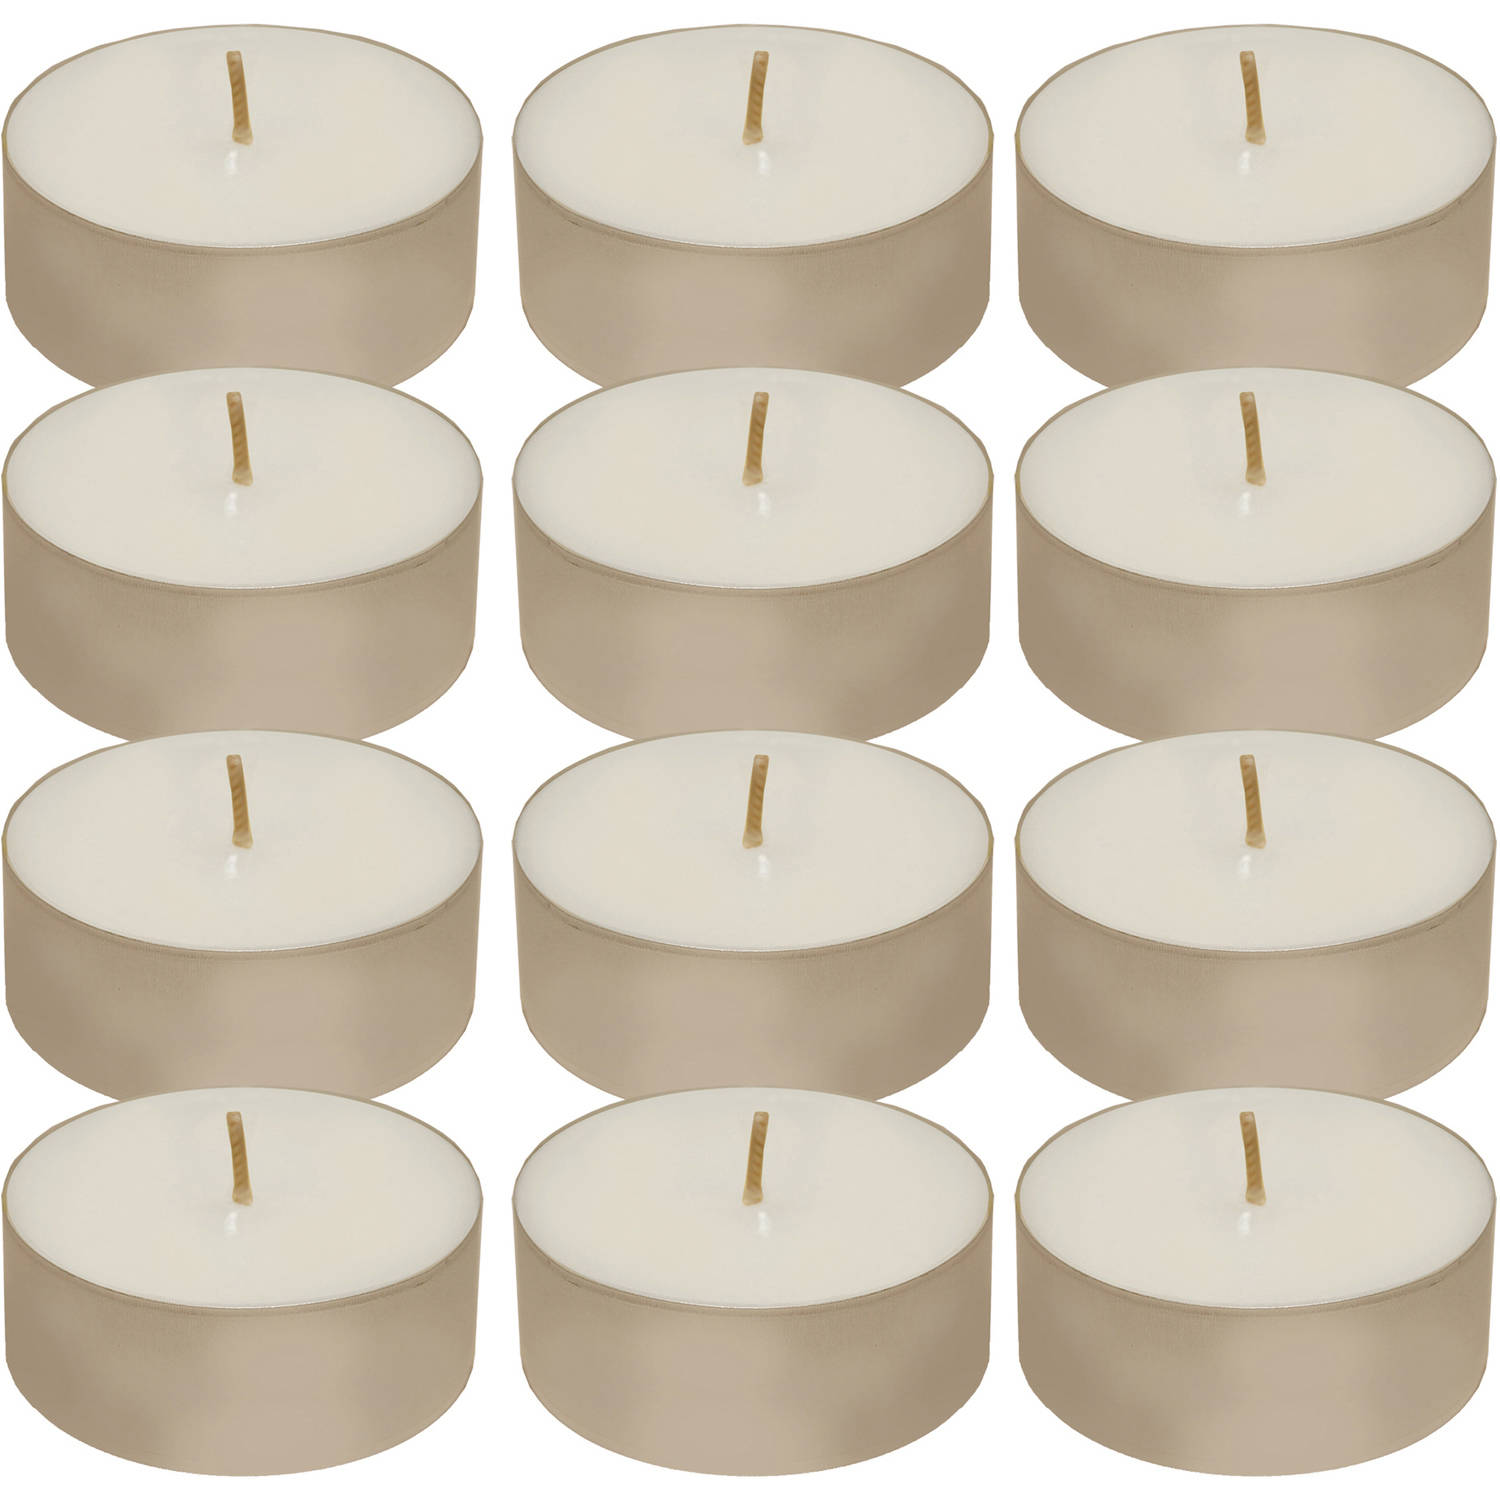 Extra Large Tea Light Candles, 12 Count